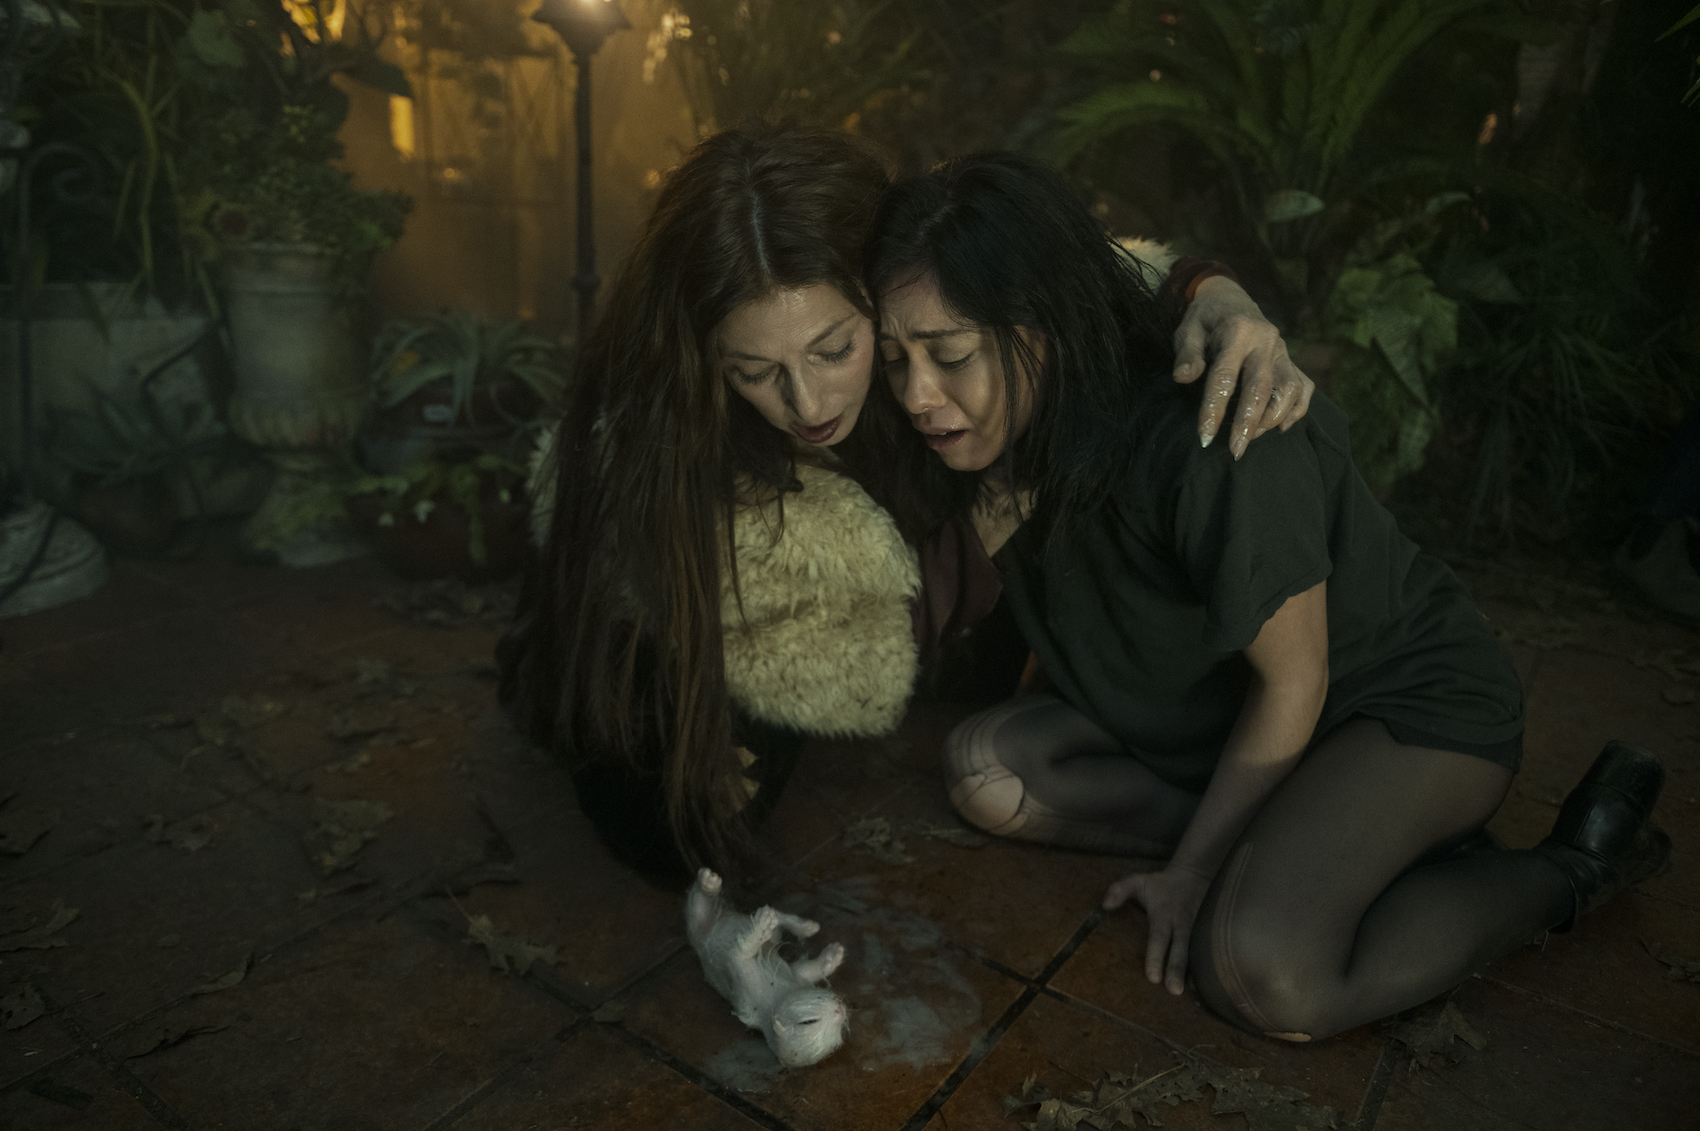 BRAND NEW CHERRY FLAVOR (L to R) CATHERINE KEENER as BORO and ROSA SALAZAR as LISA NOVA in episode 101 of BRAND NEW CHERRY FLAVOR Cr. SERGEI BACHLAKOV/NETFLIX © 2021